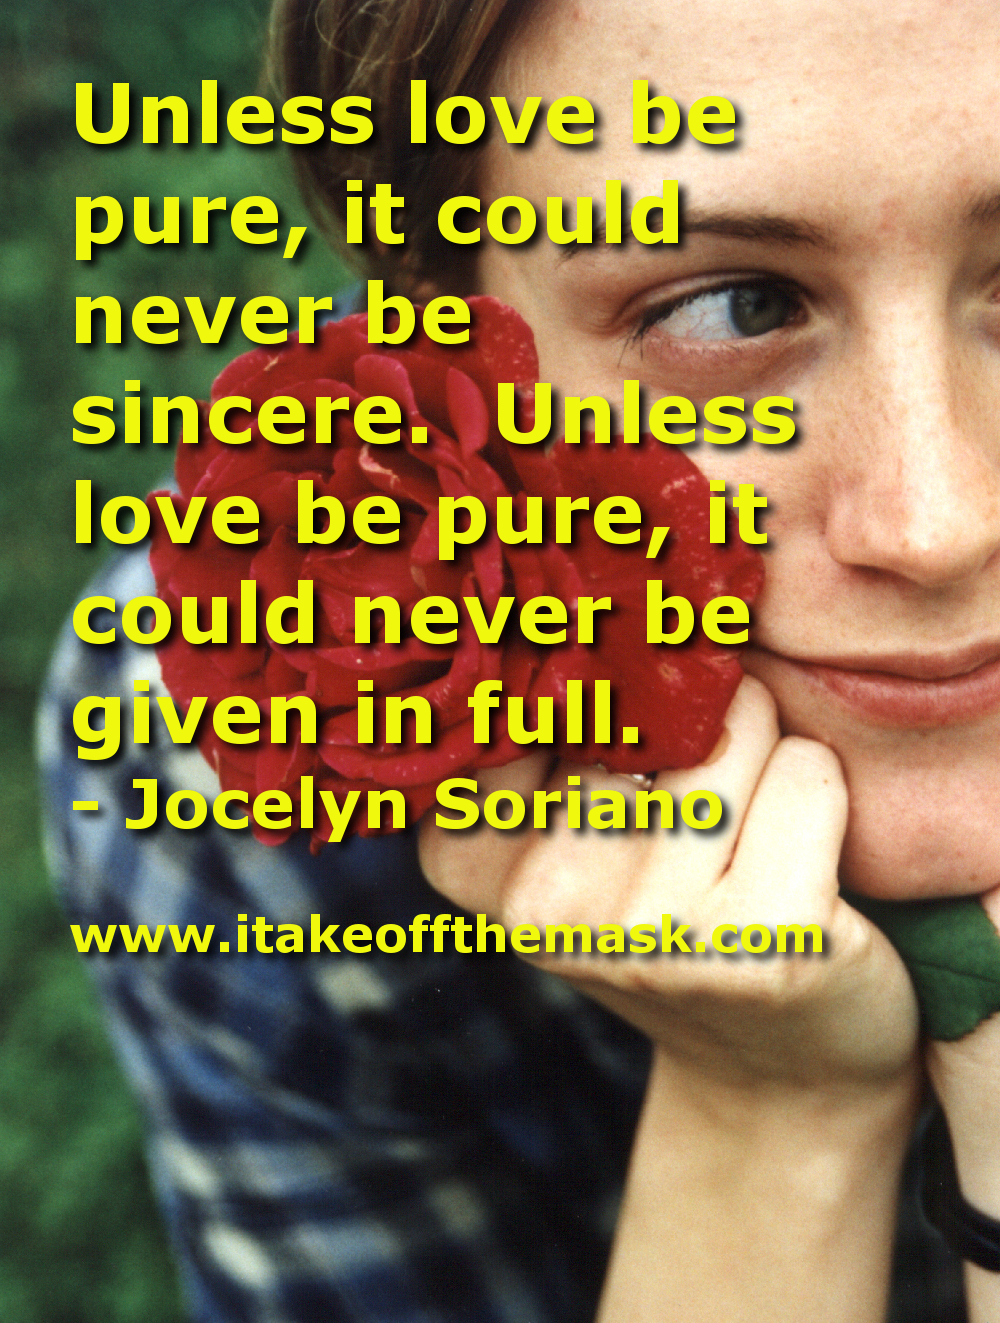 To Love With a Pure Heart